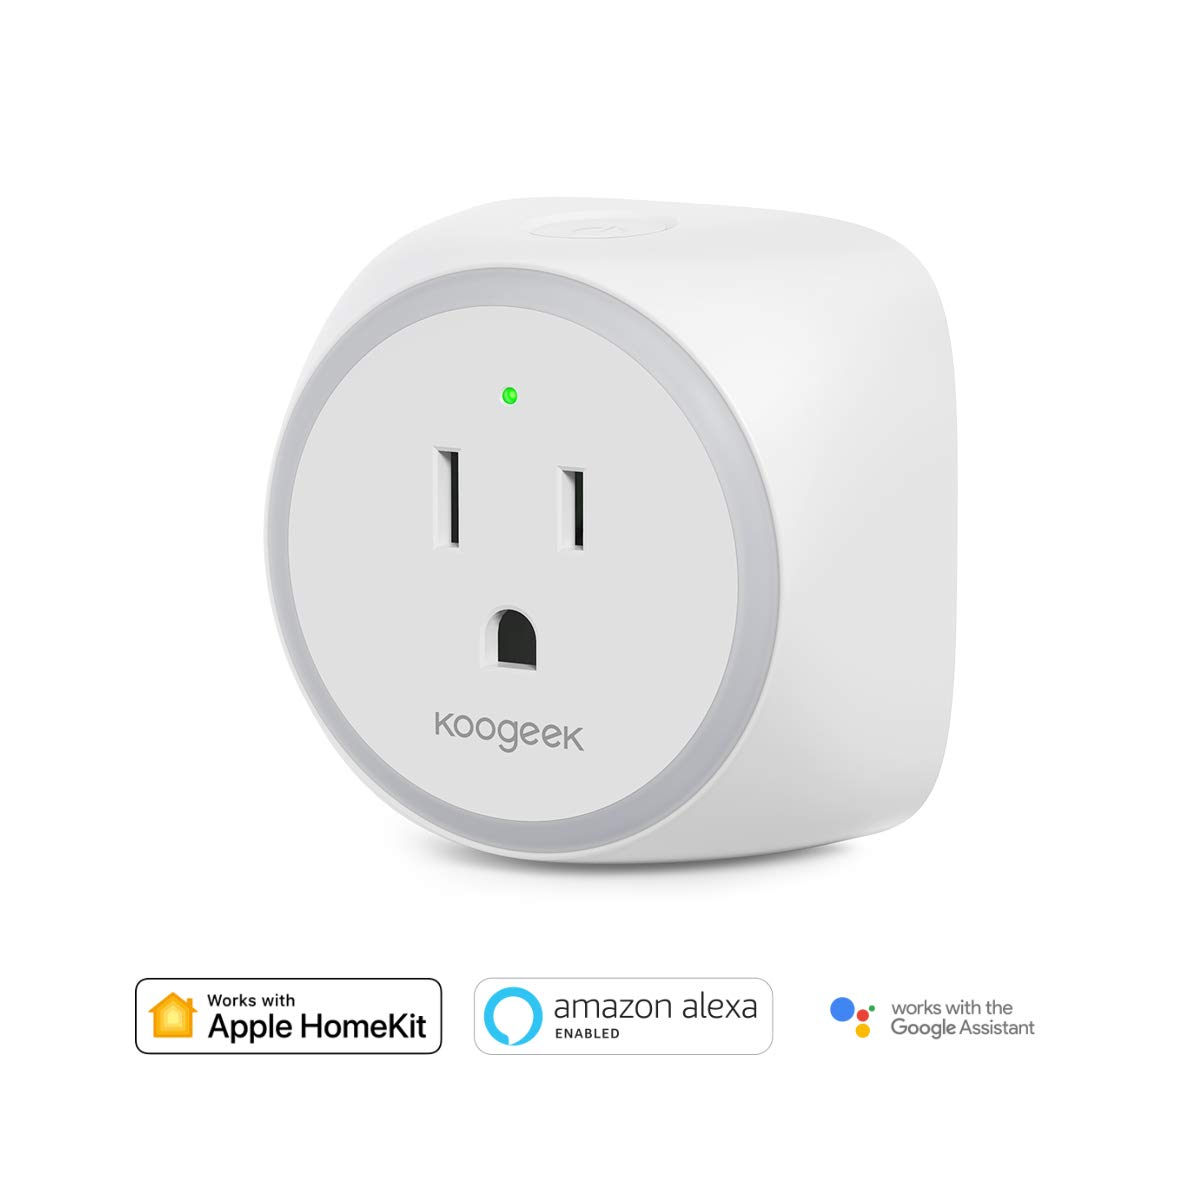 Smart WiFi Plug, Koogeek WiFi Outlet Mini Socket Works with Apple HomeKit, Amazon Alexa and Google Assistant for iOS and Android Devices Remote Control